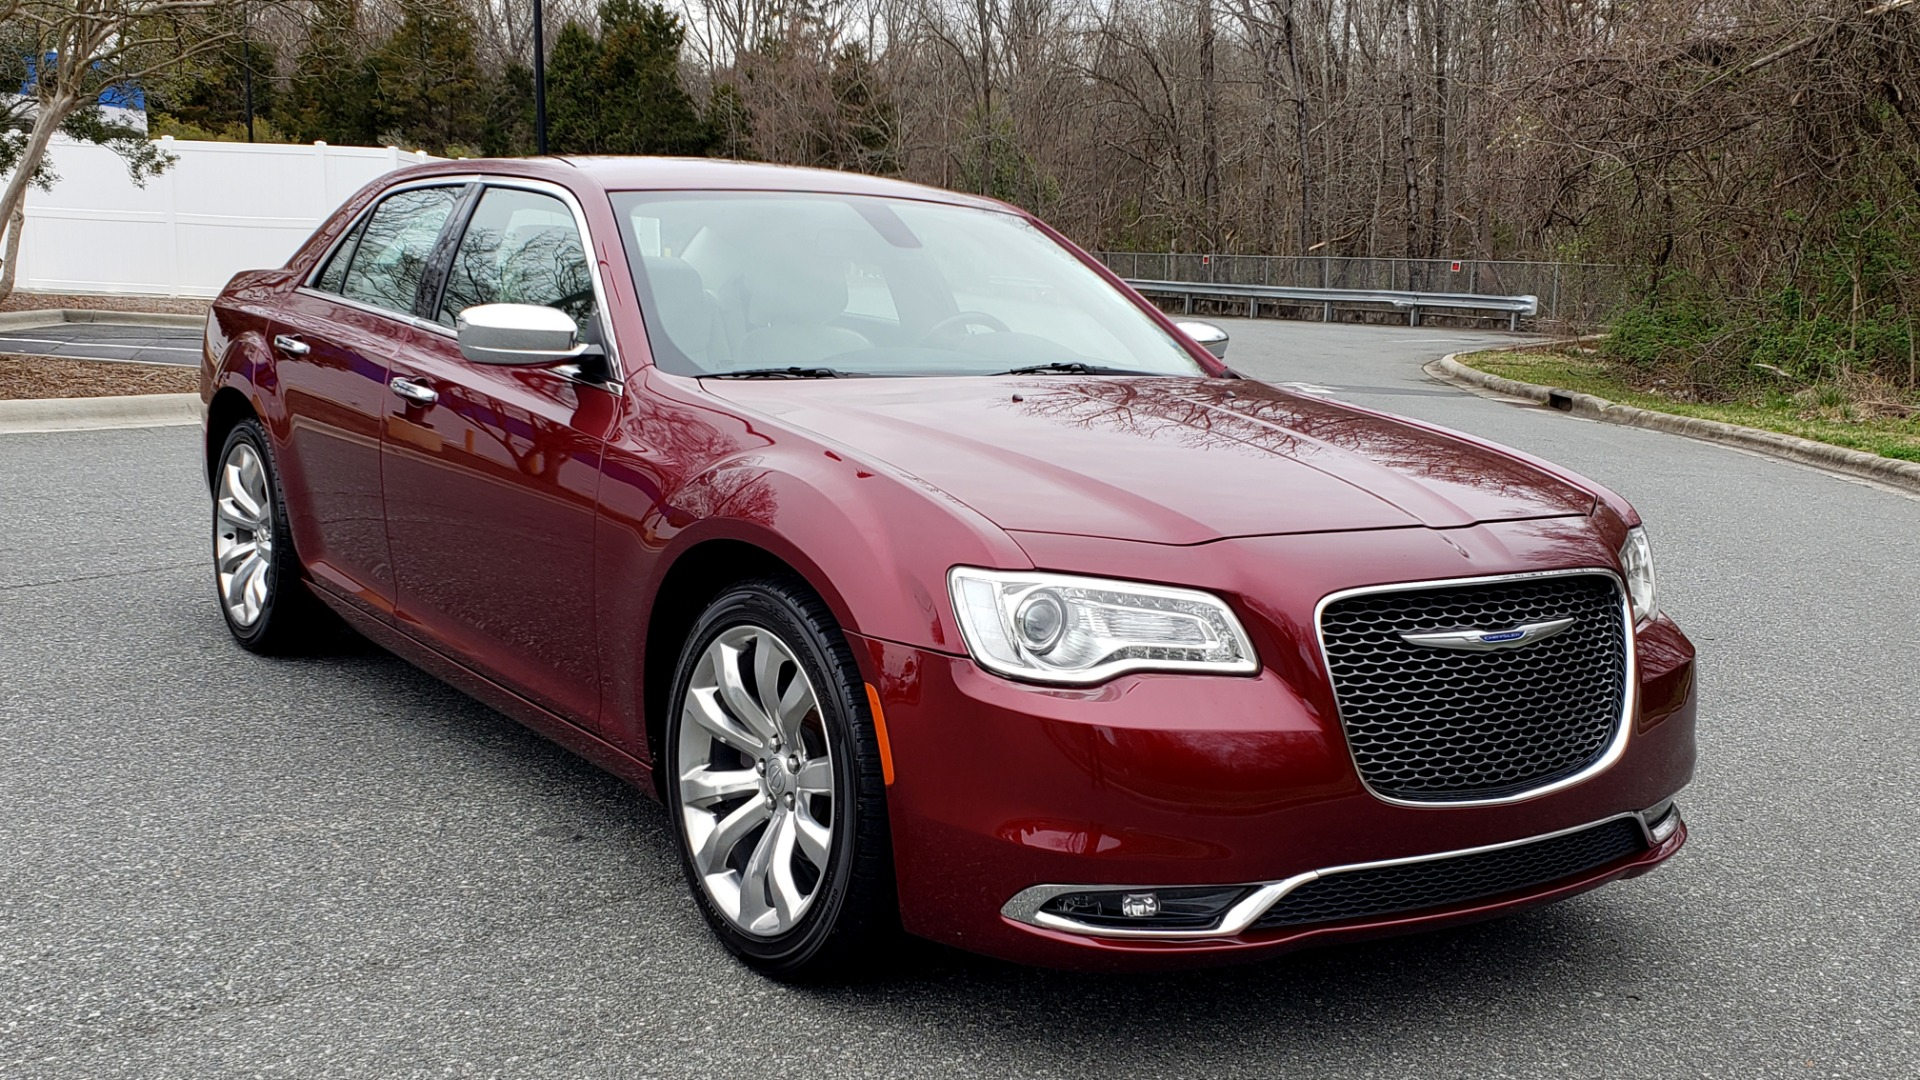 Used 2019 Chrysler 300 LIMITED / 3.6L V6 / 8-SPD AUTO / LEATHER / REARVIEW for sale Sold at Formula Imports in Charlotte NC 28227 12